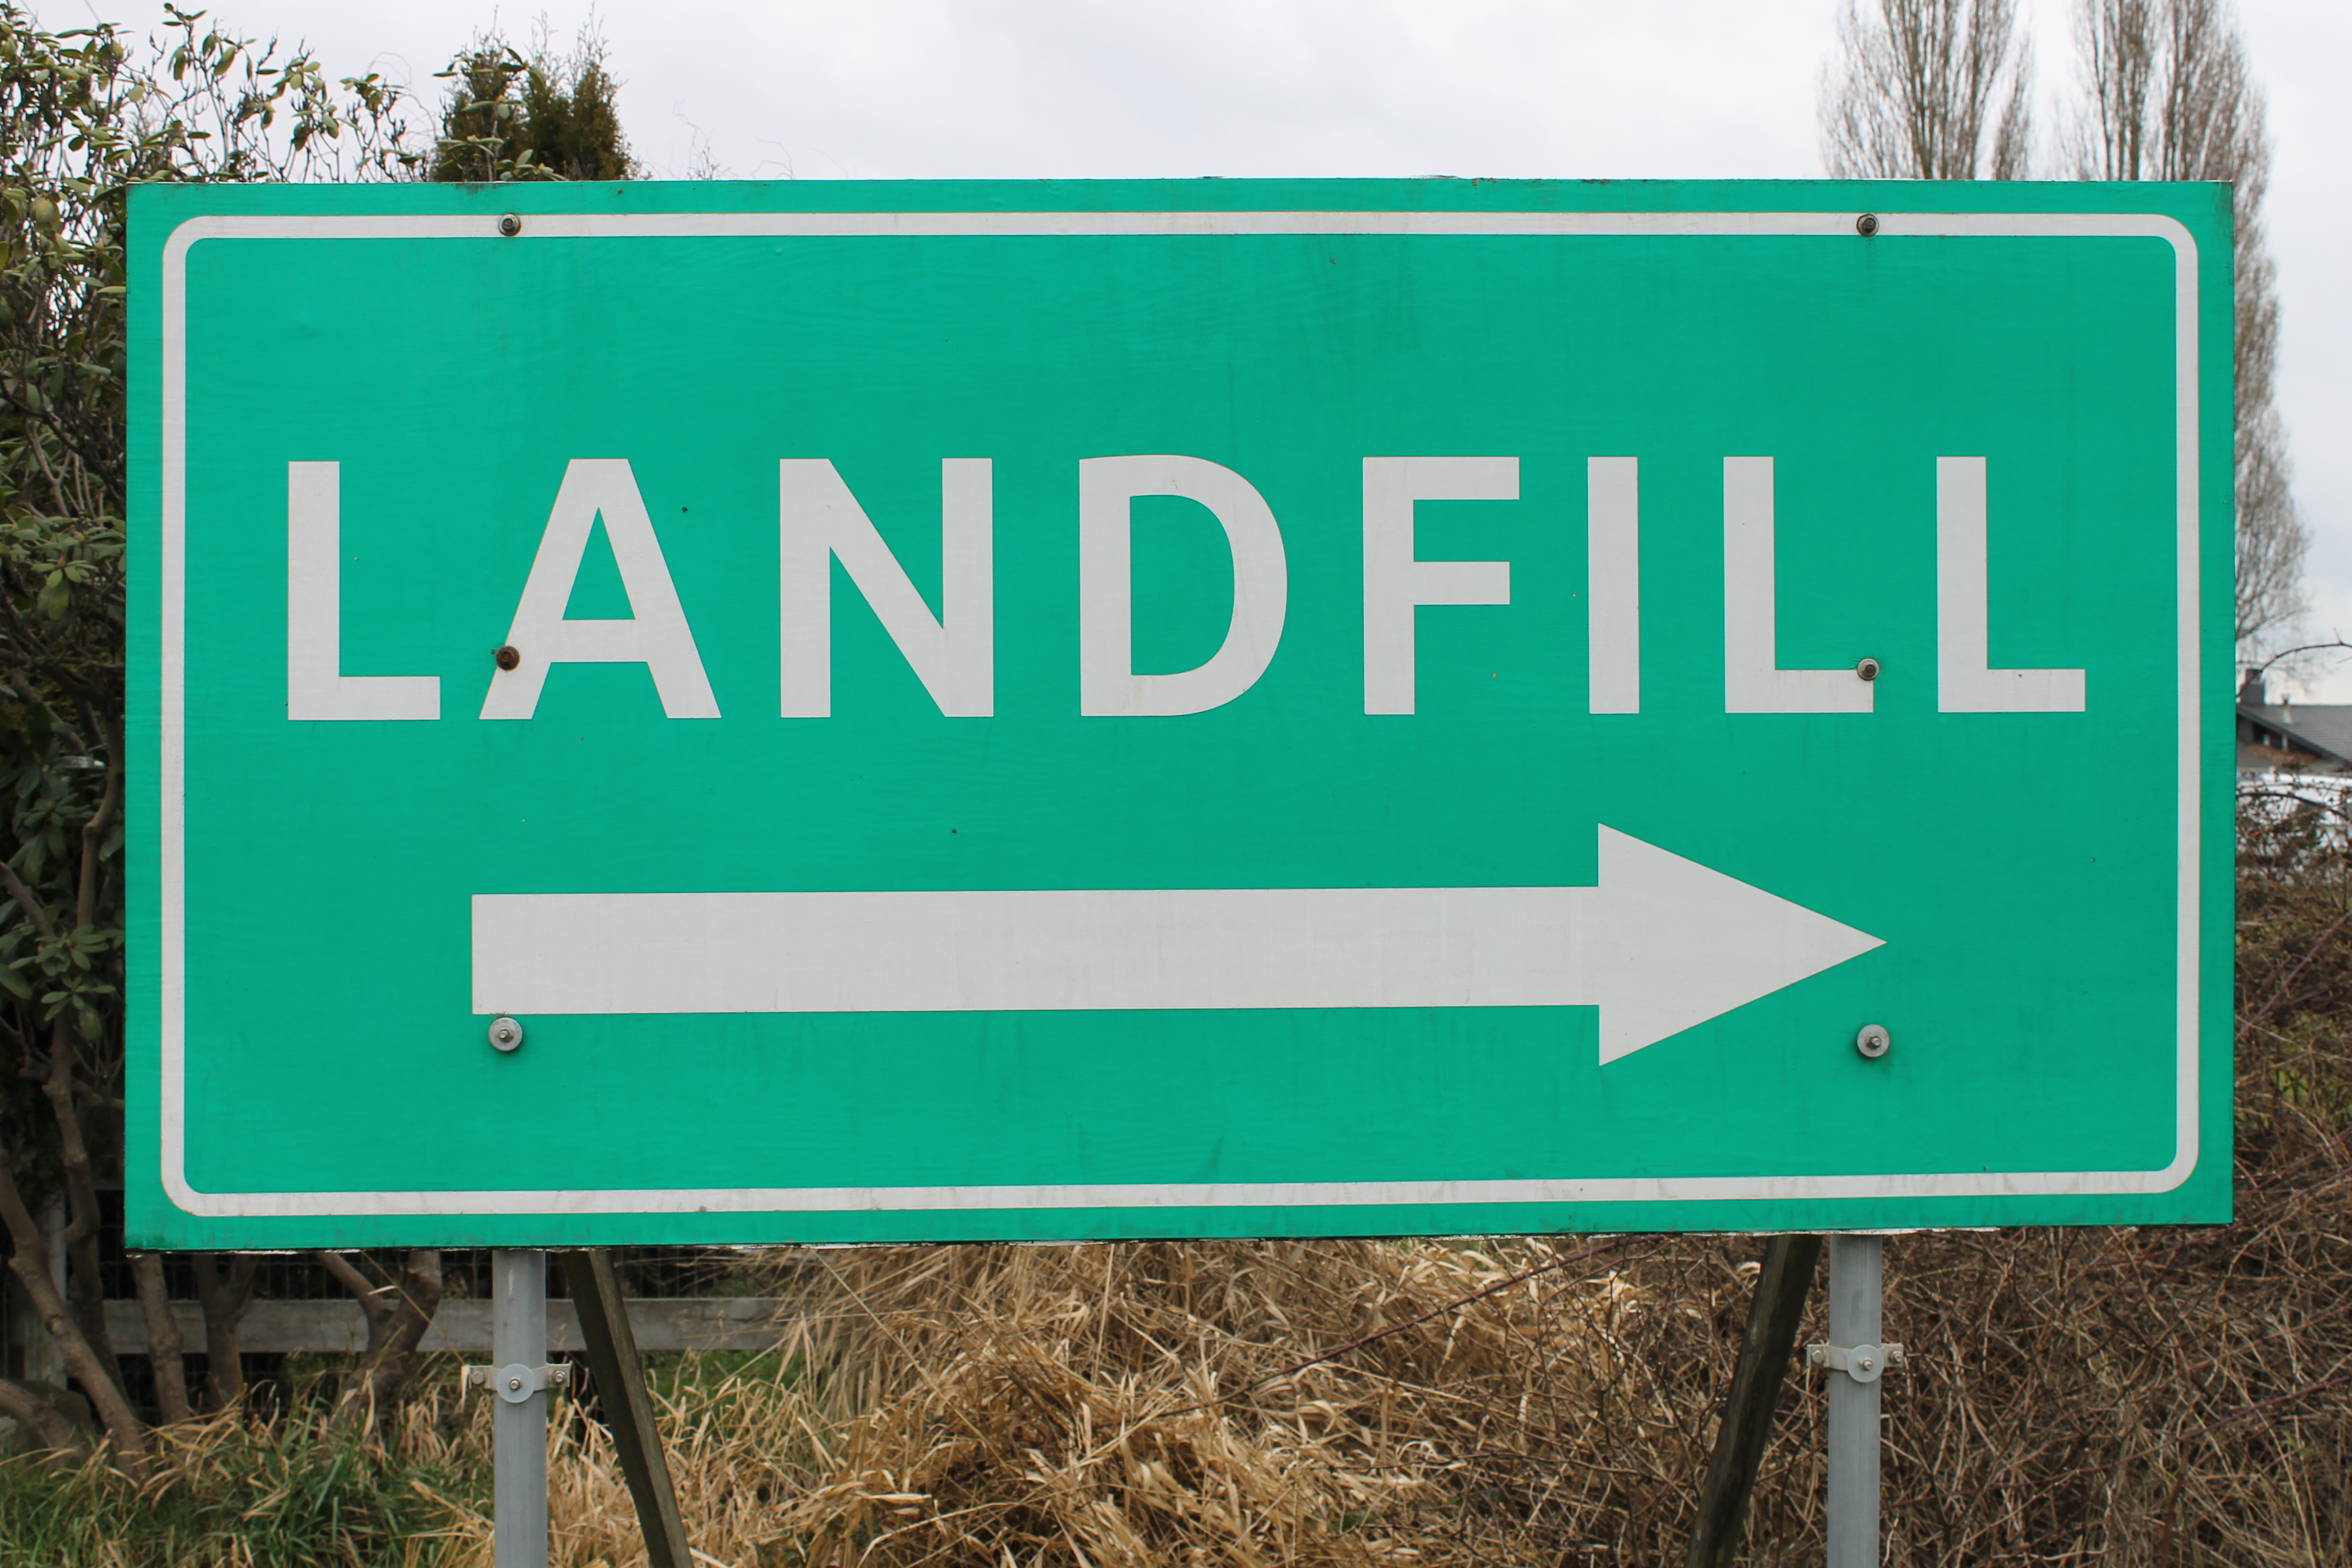 many products end up in landfills